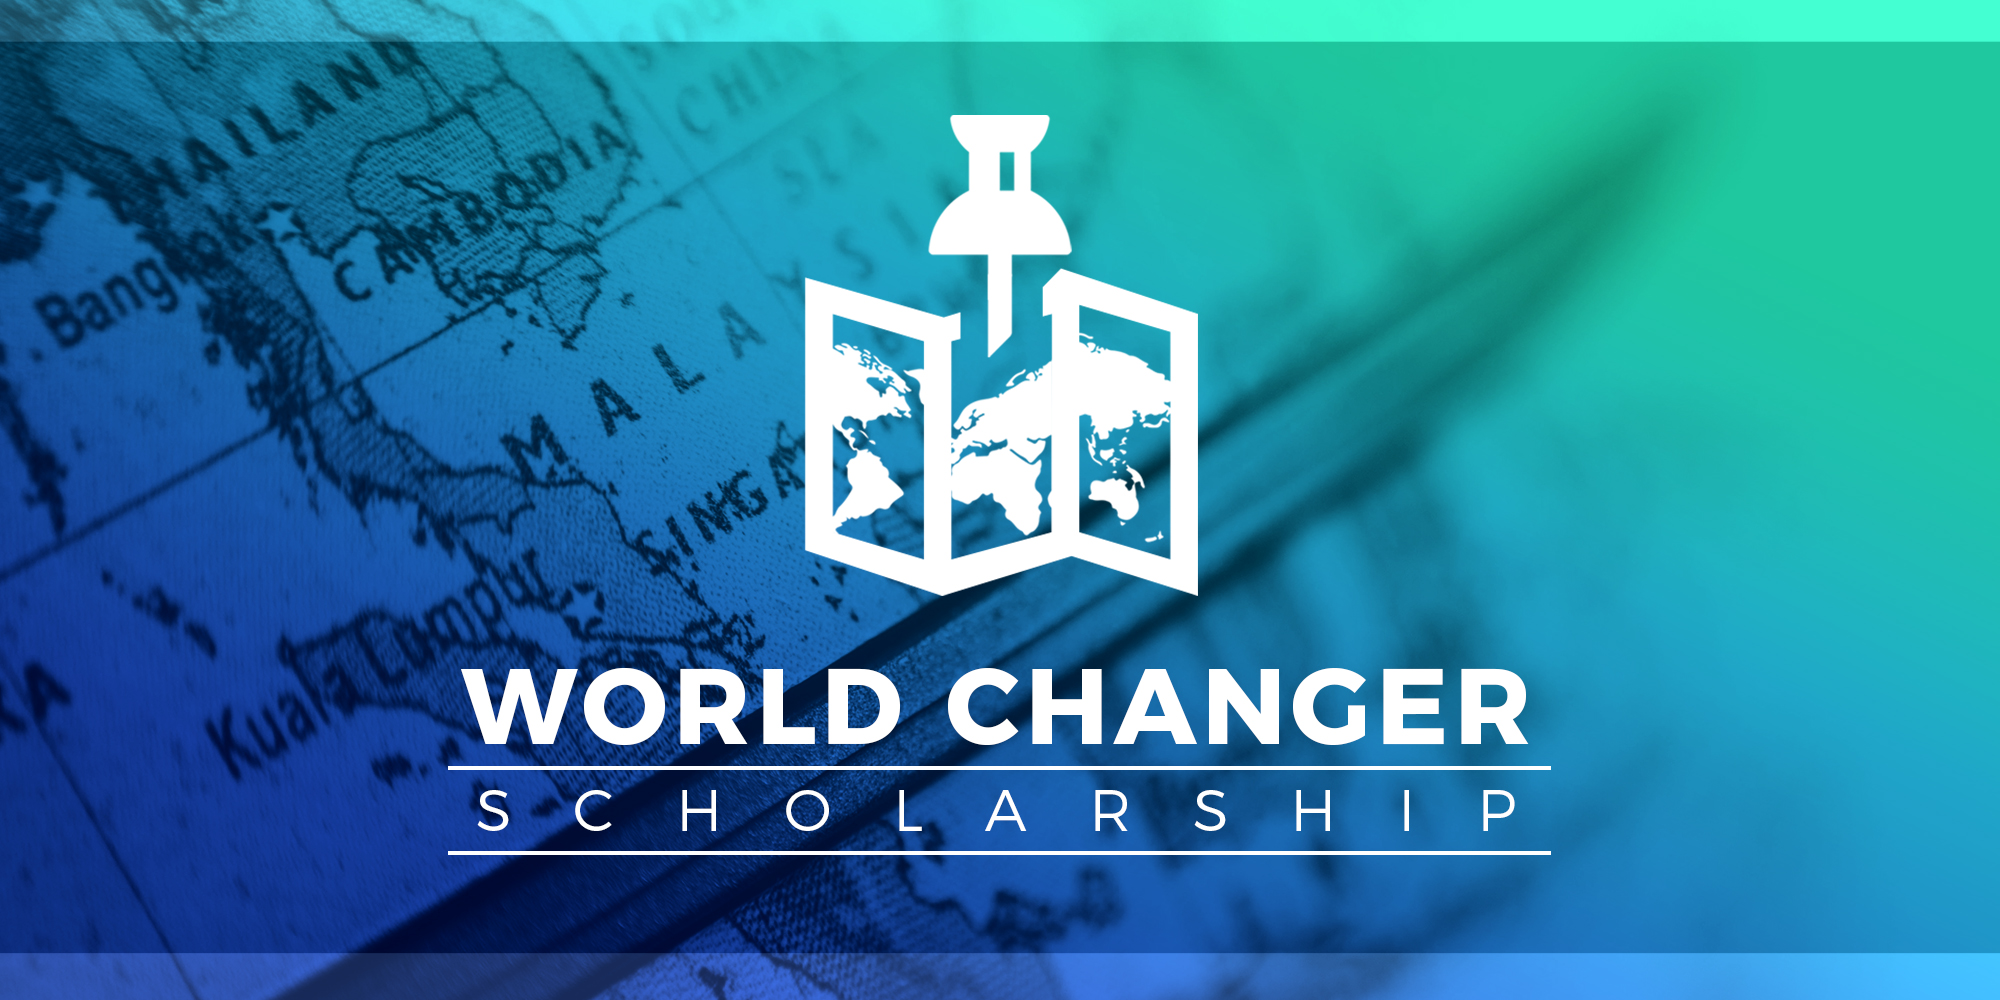 World Changer Scholarship